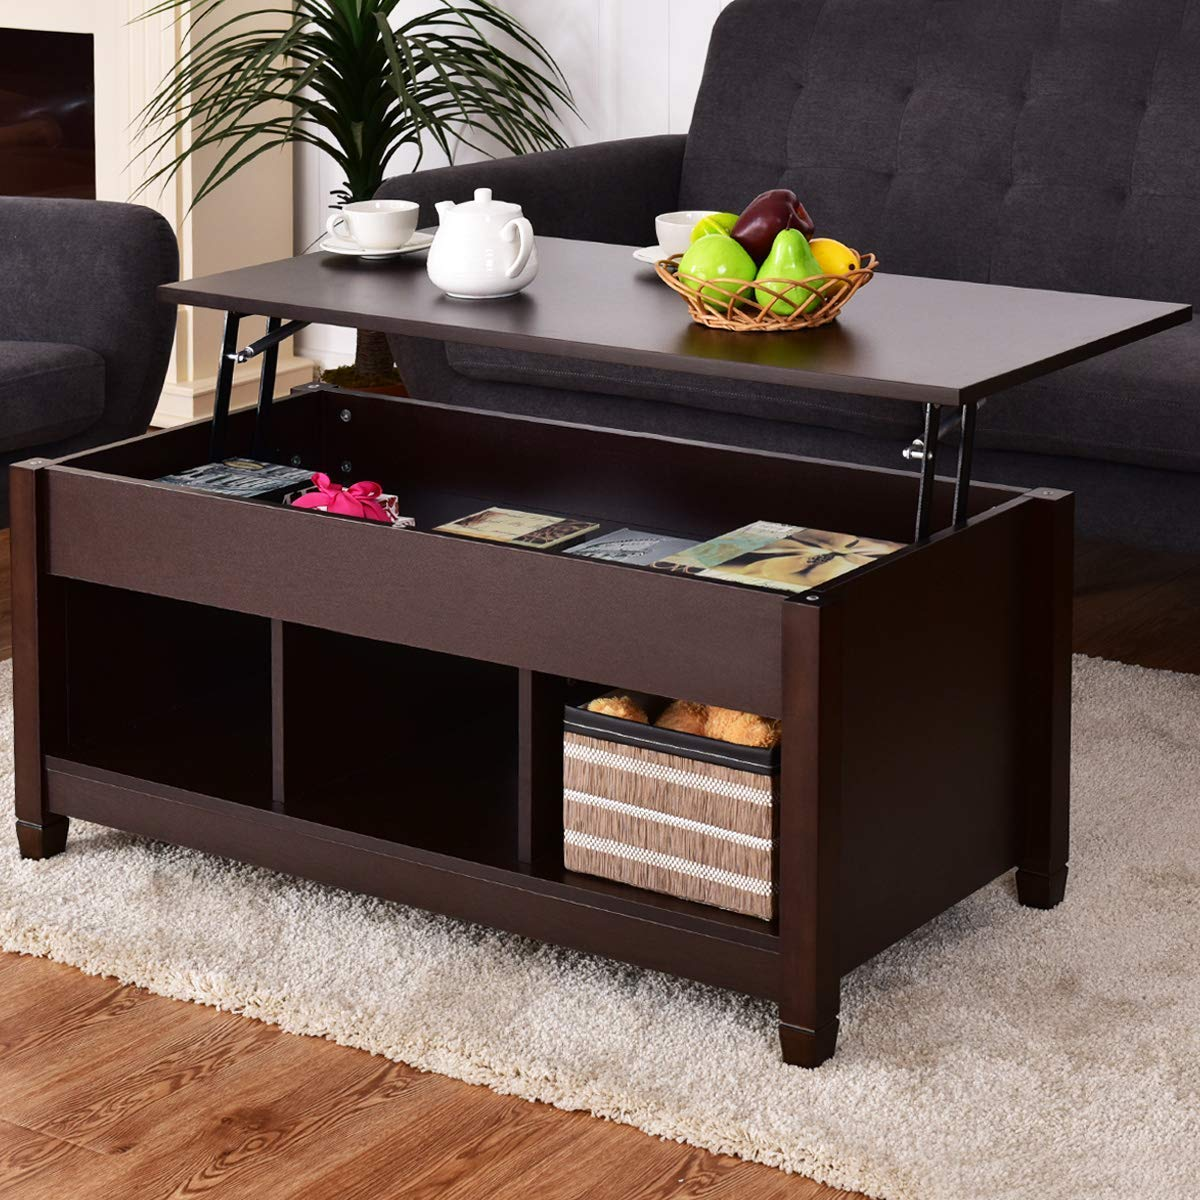 Cheap Coffee And End Tables For Sale New Modern Coffee Table Lift Top End Table Storage Uncle